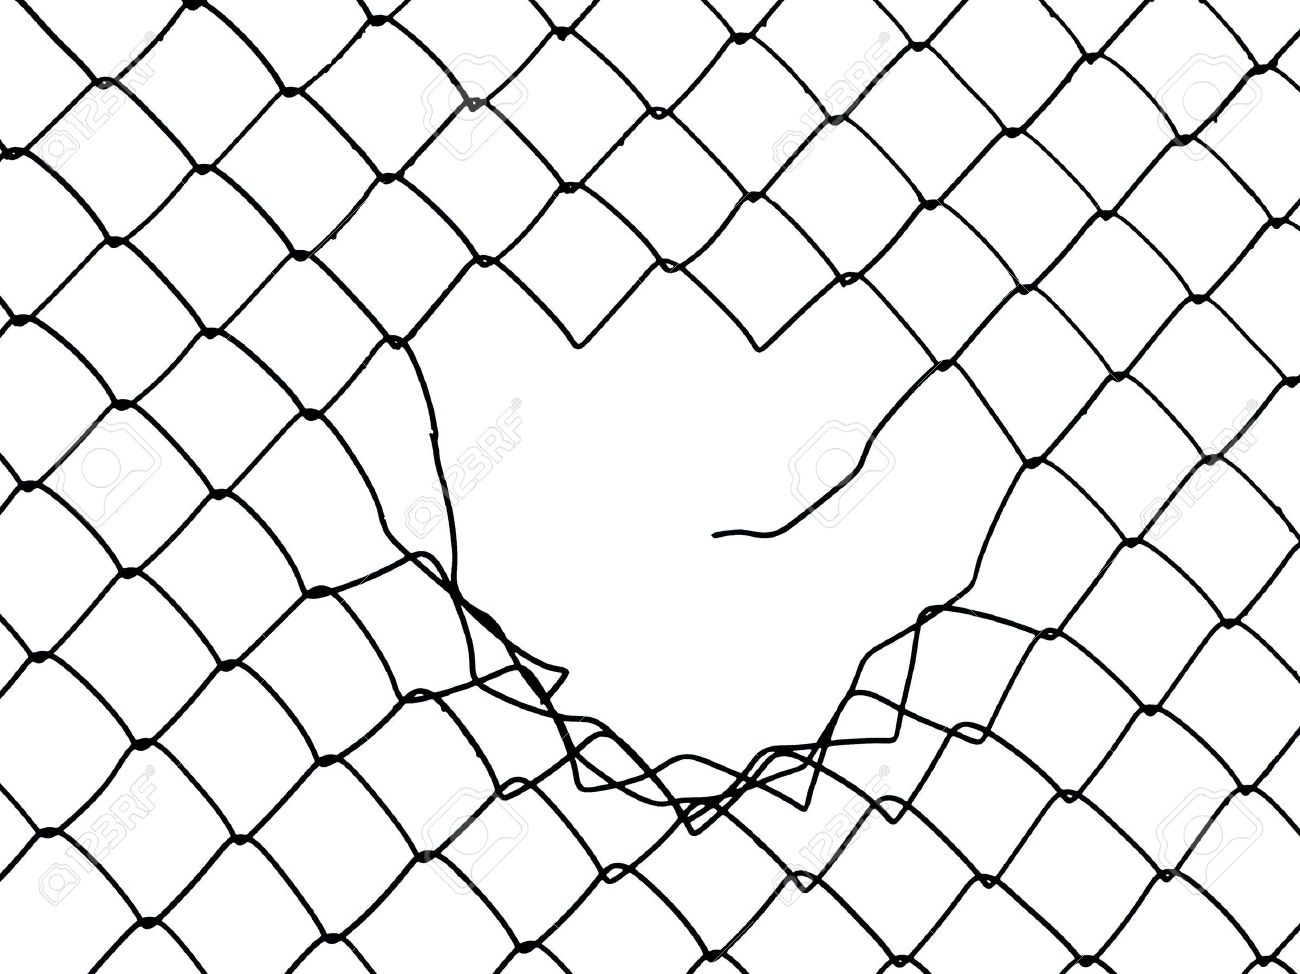 1300x974 Plain Broken Chain Link Png O To Decorating Ideas